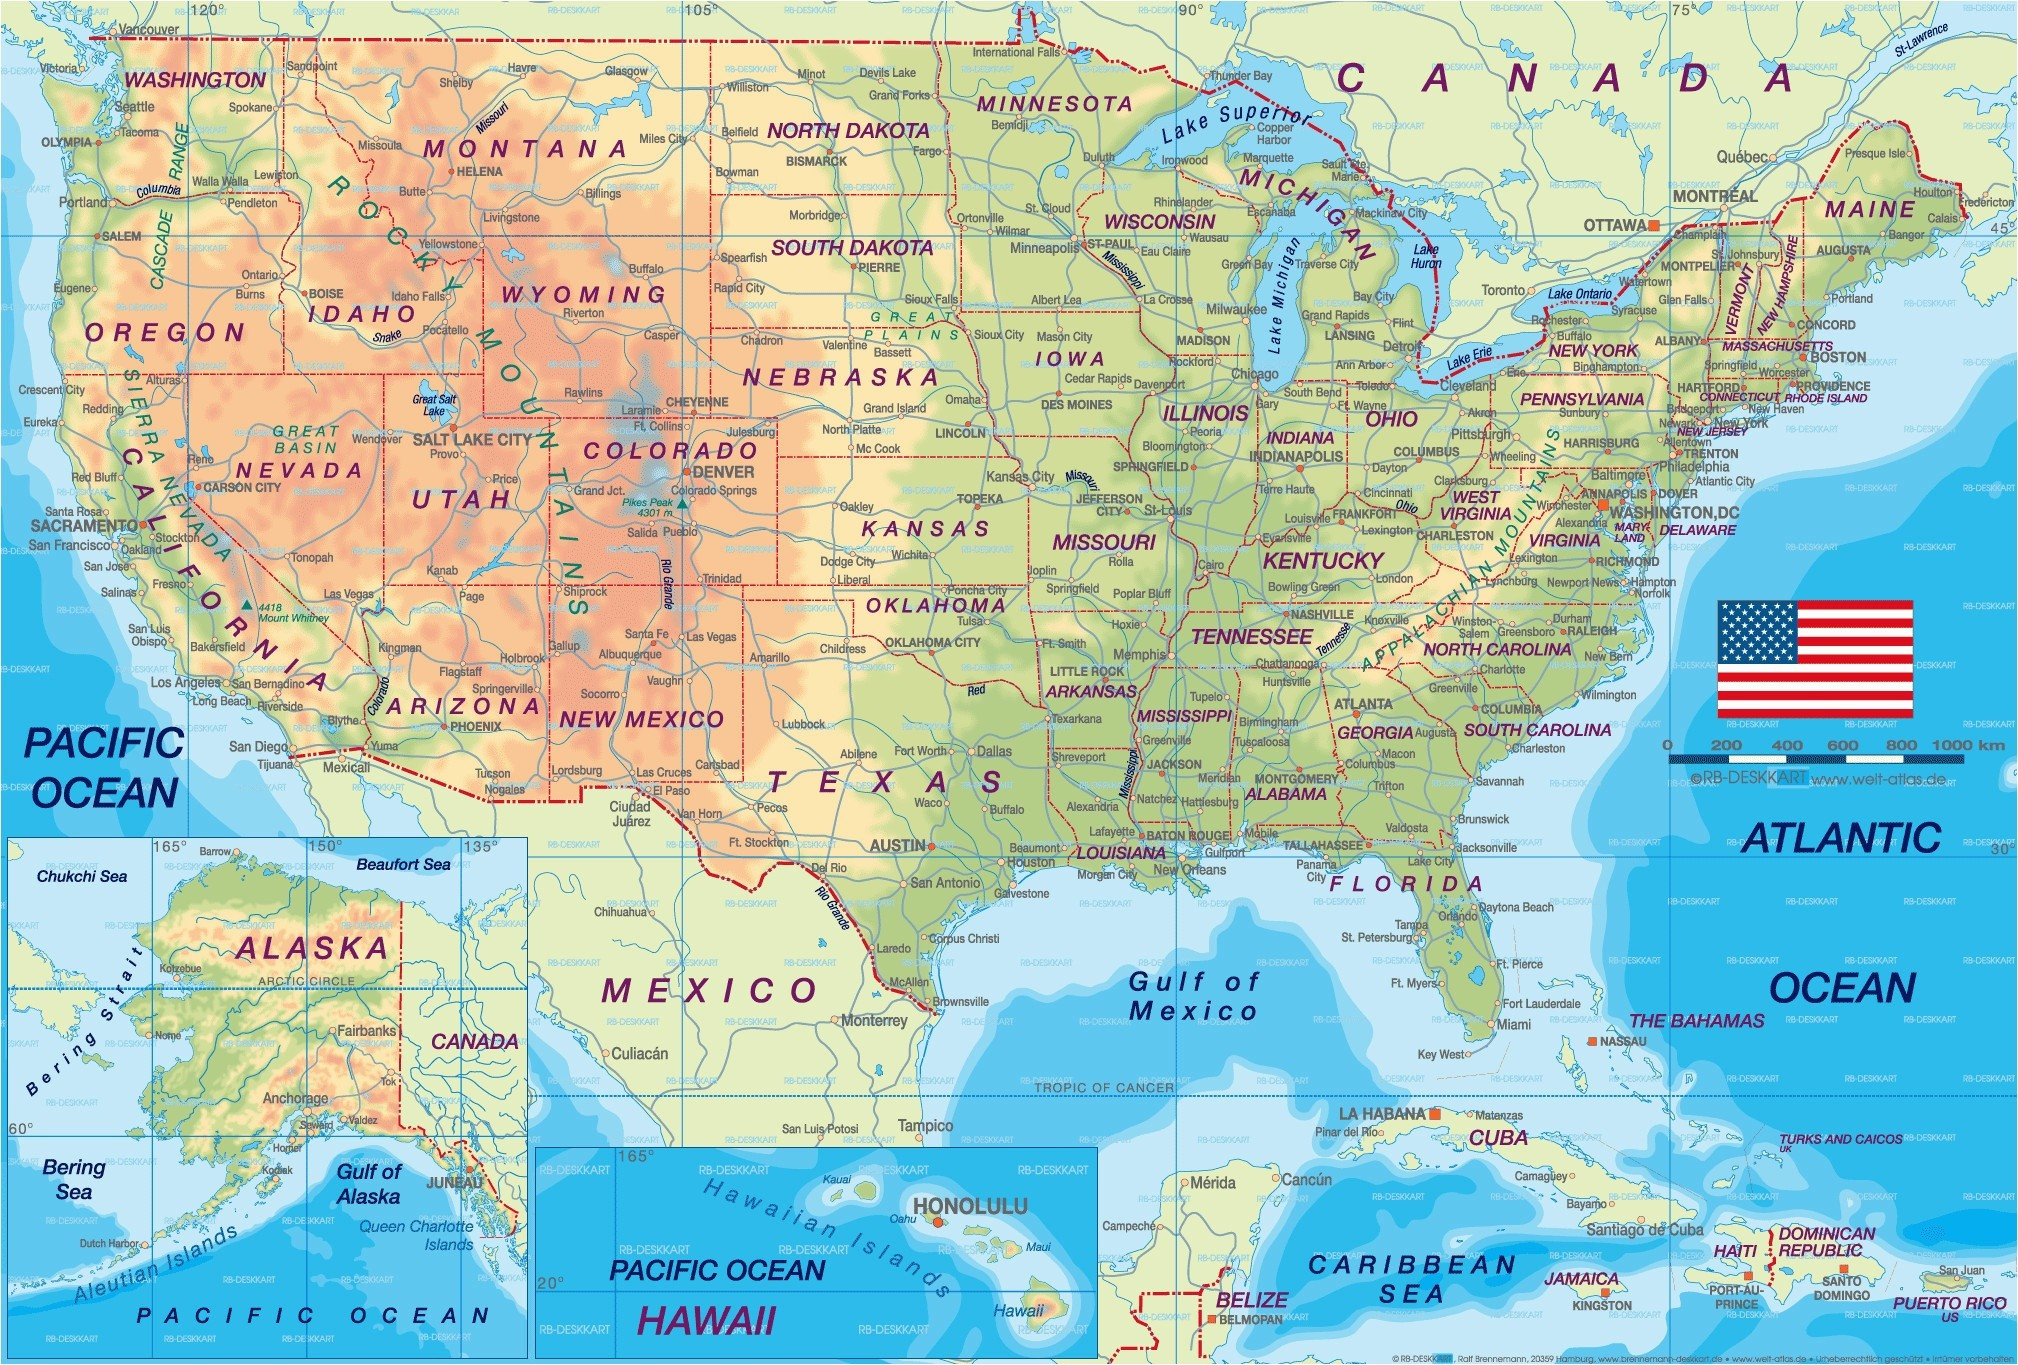 Printable Map Of The United States For Students Awesome Printable Map Eastern United States Valid United States Map Game